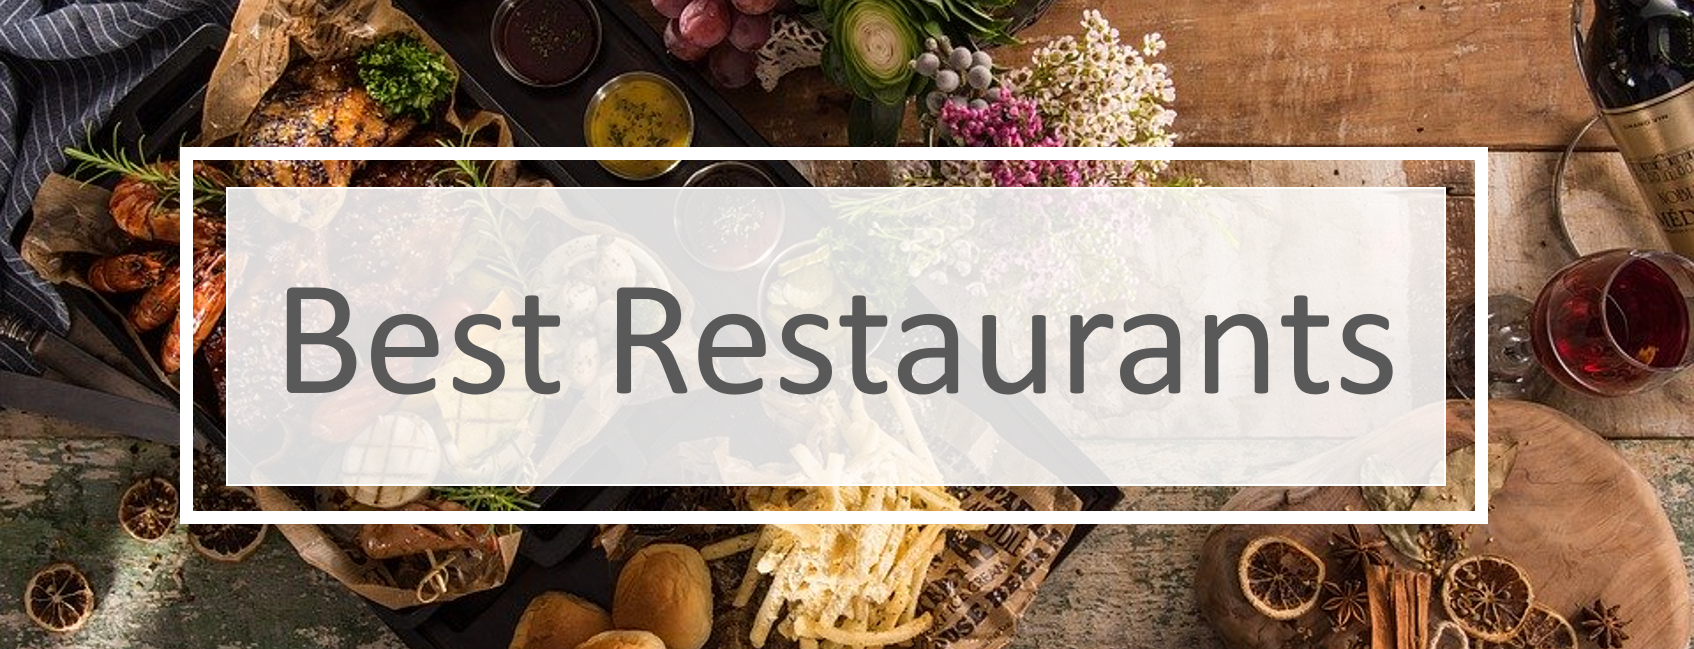 Best Restaurants in Slidell LA